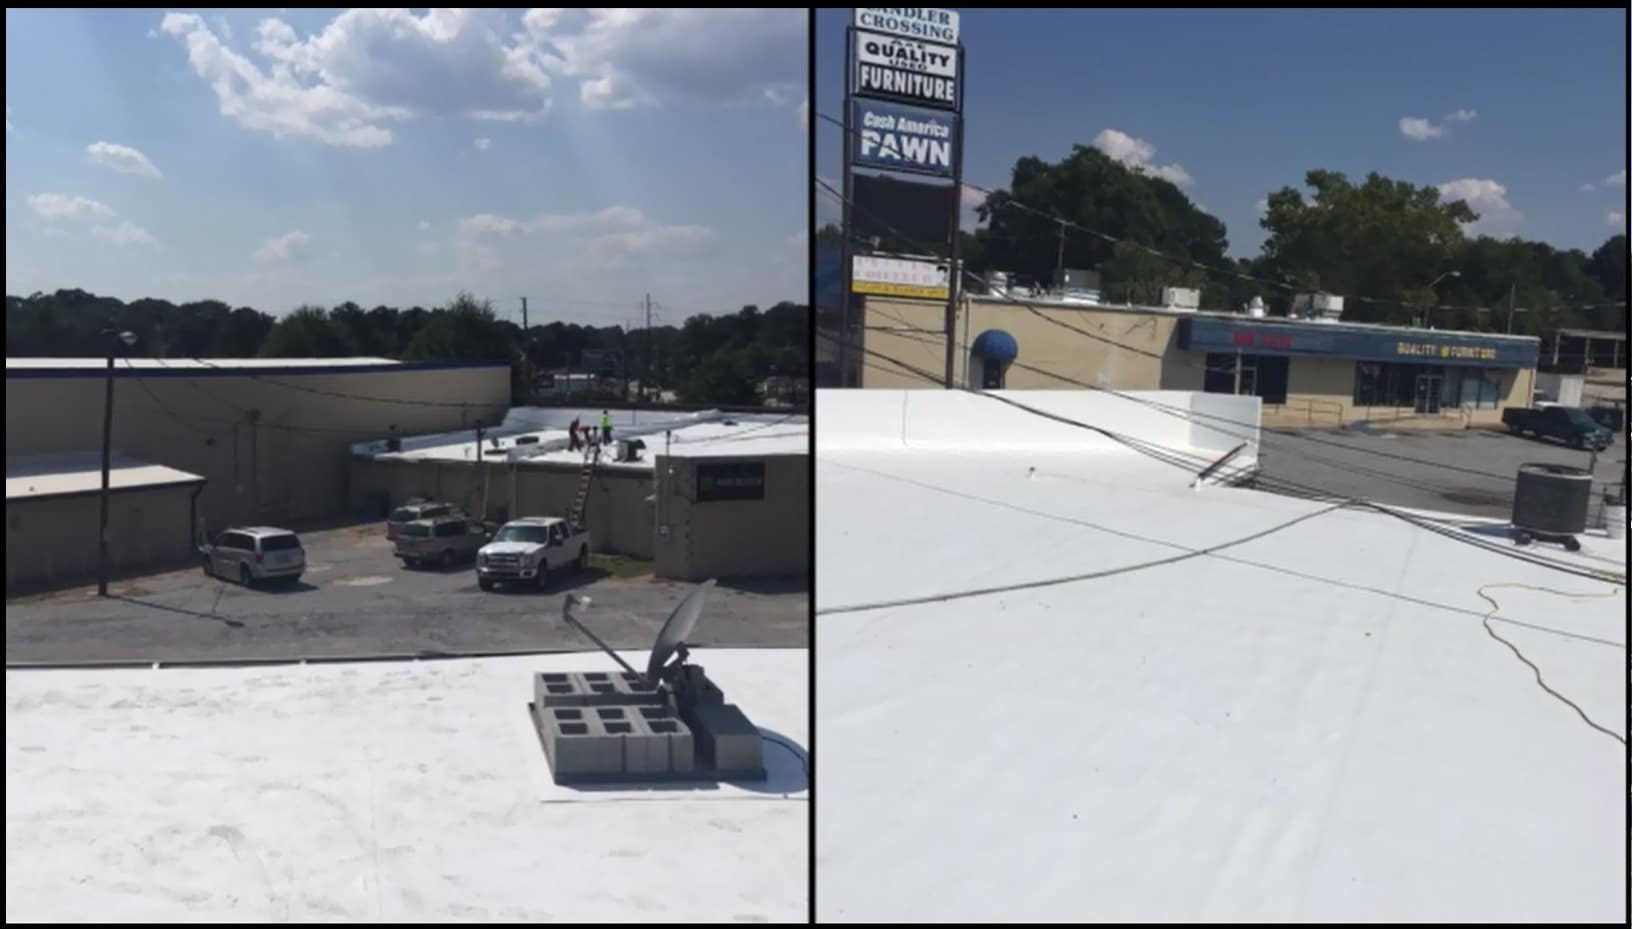 Commercial Roofing Subcontracting Services